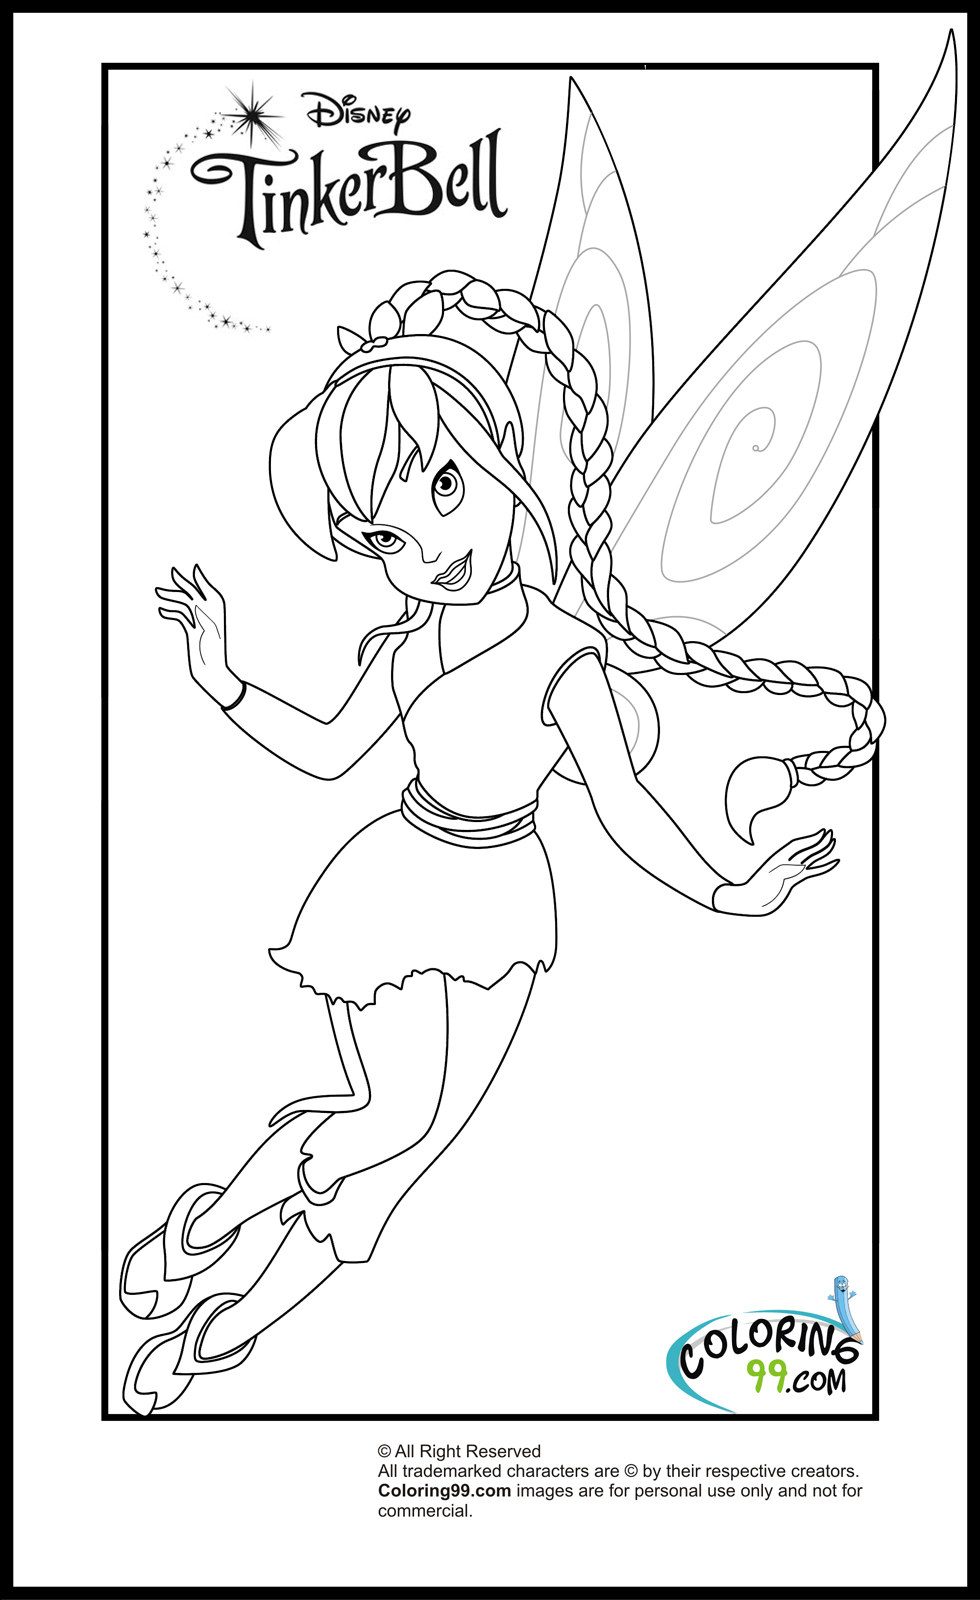 tinkerbell and friends coloring pages tinkerbell and friends coloring pages team colors coloring and tinkerbell friends pages